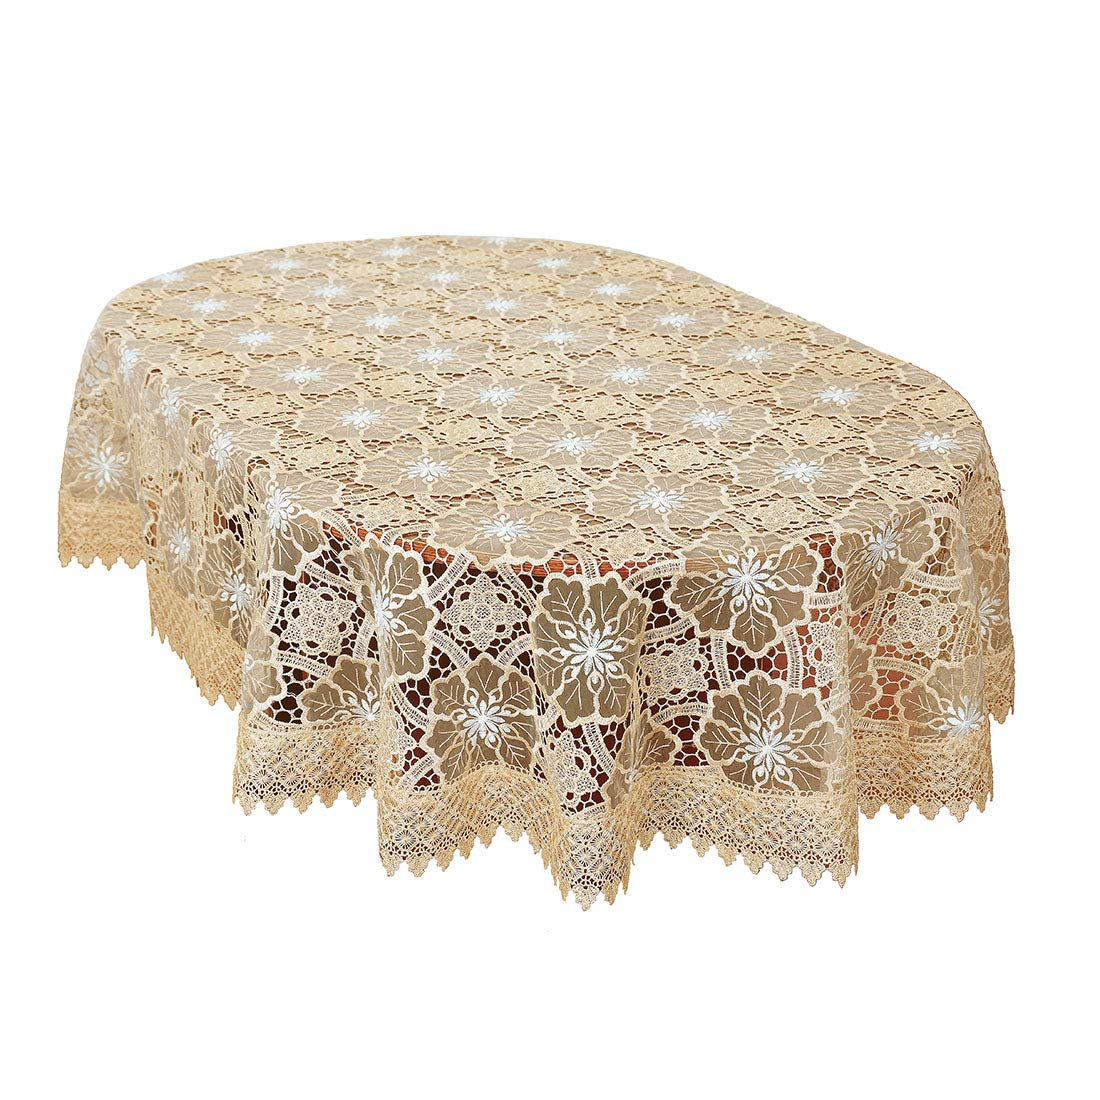 Lace Tablecloths Oval 300x300.jpg Amazon.com: Simhomsen Beige Embroidered Lace Tablecloth 60 × 120 Inch Oval:  Home u0026 Kitchen